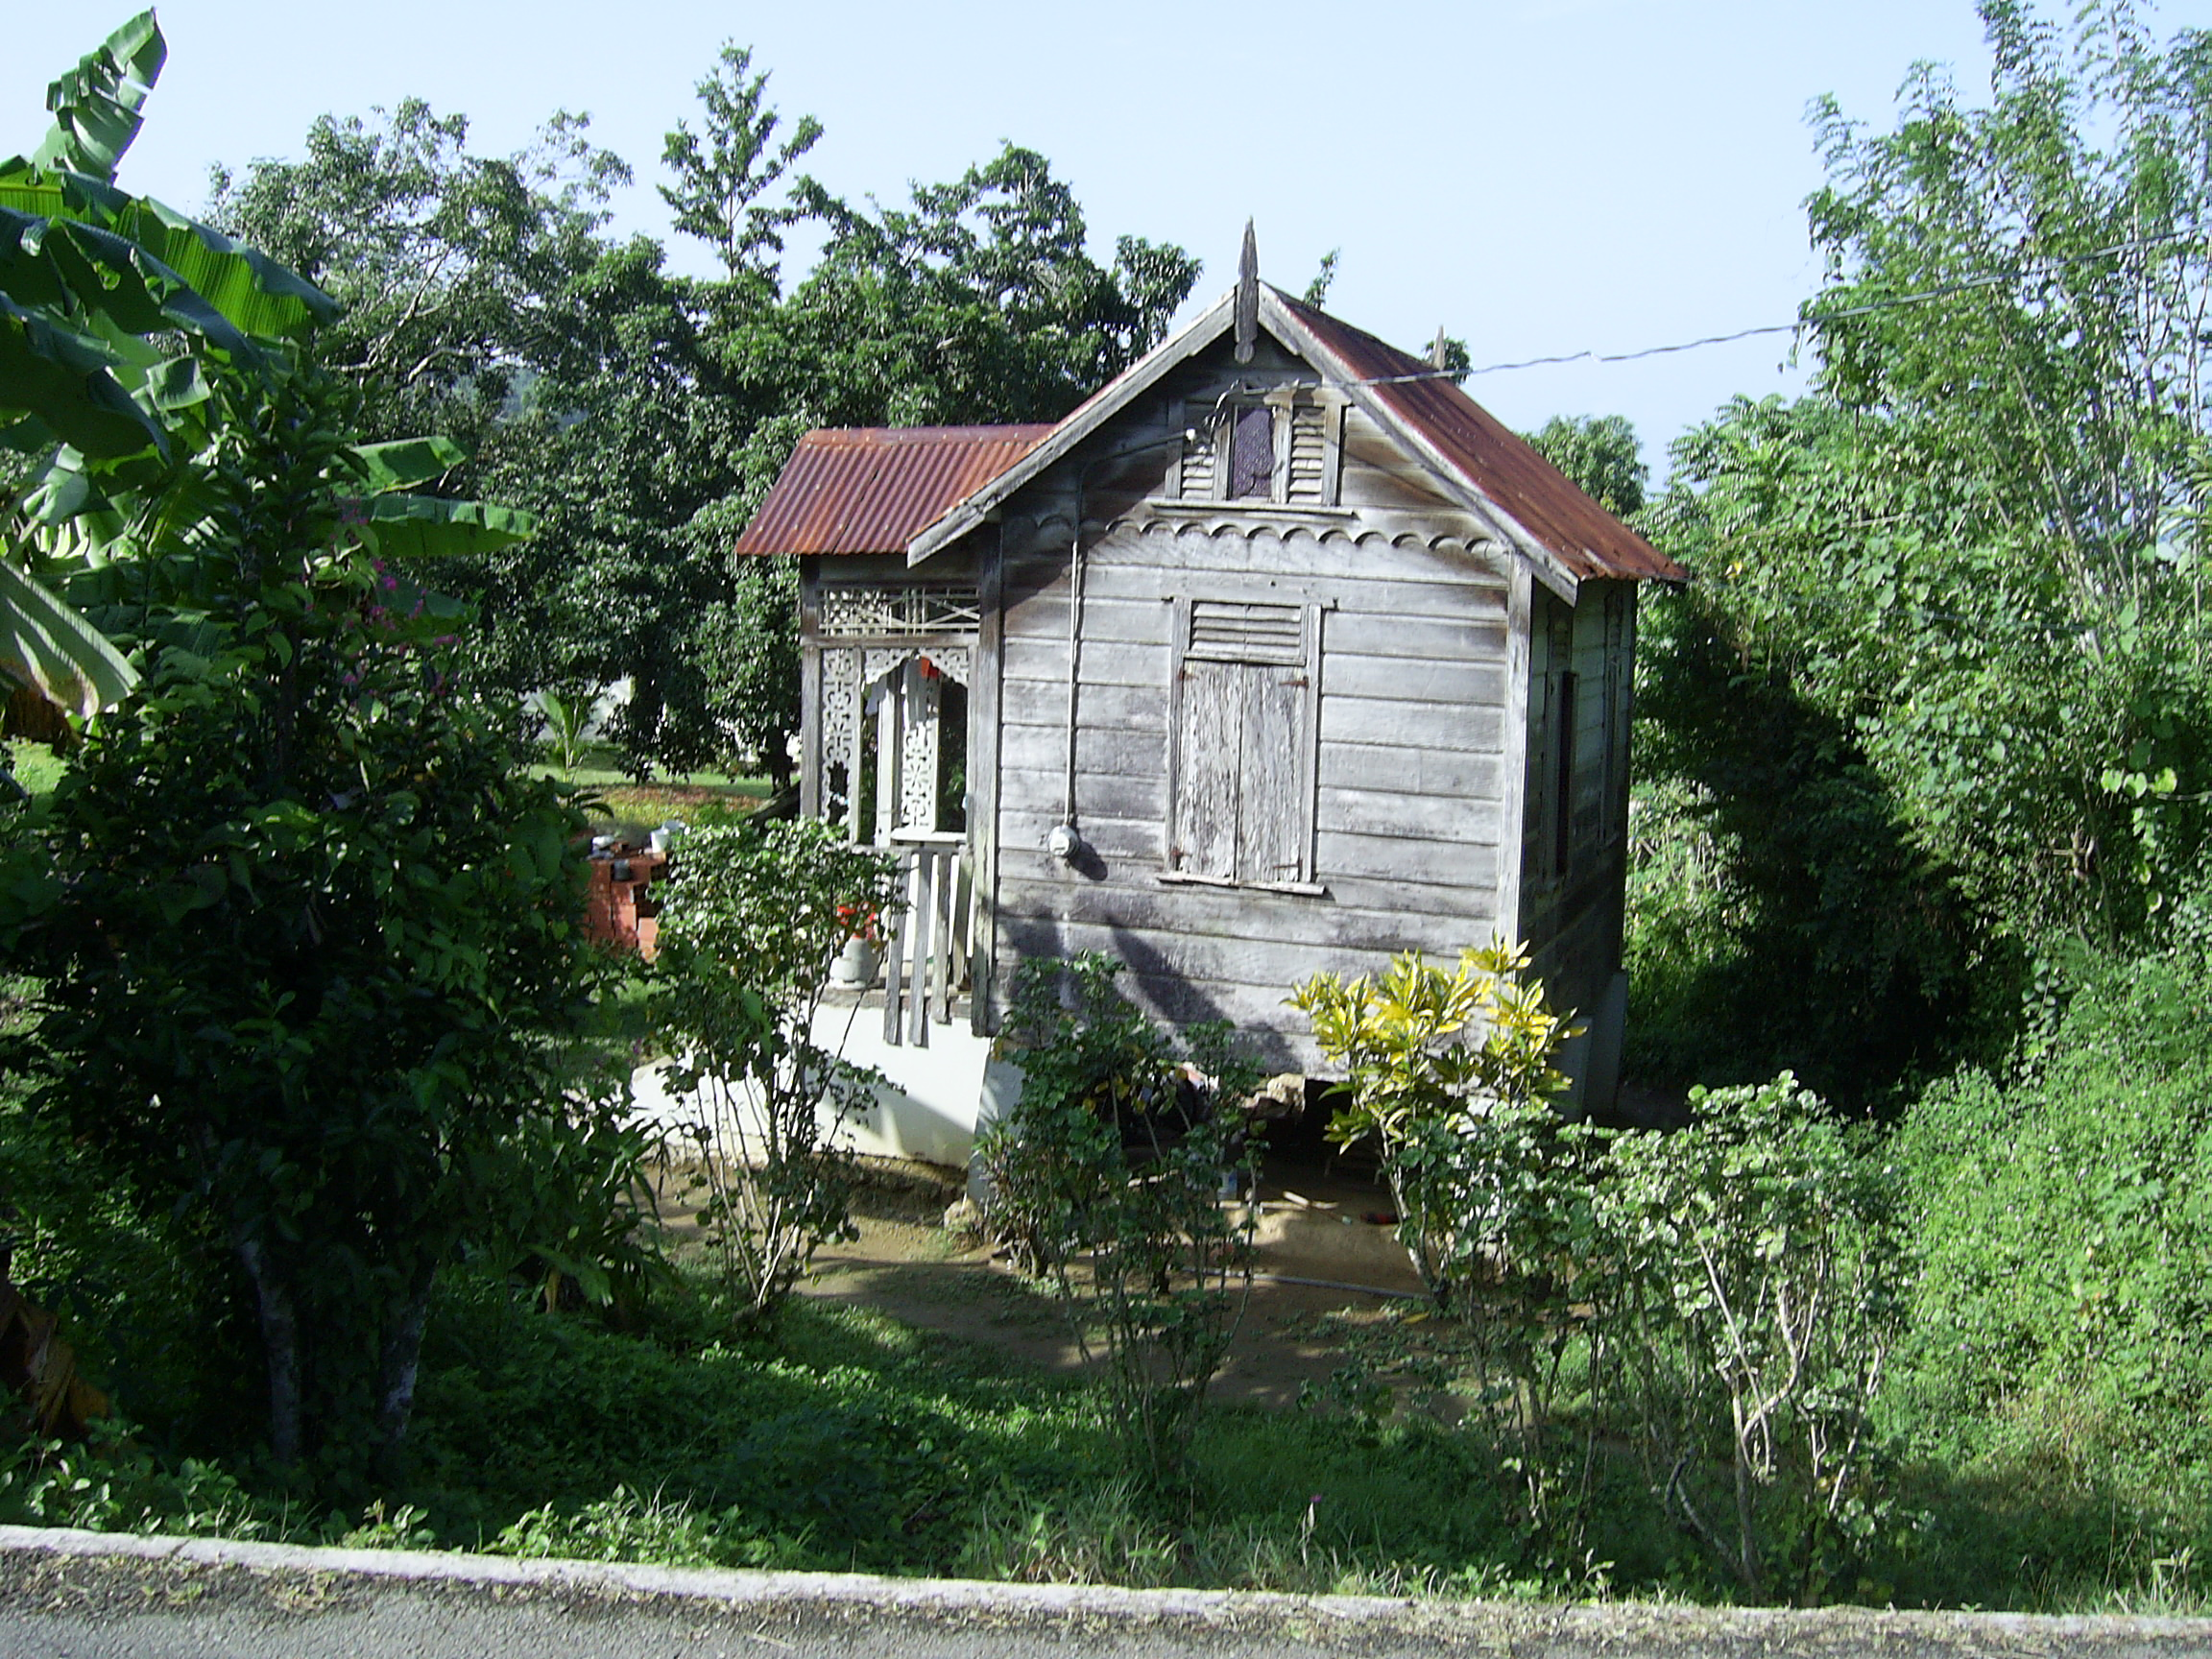 A typical Tobagen (is it gen or gon) house